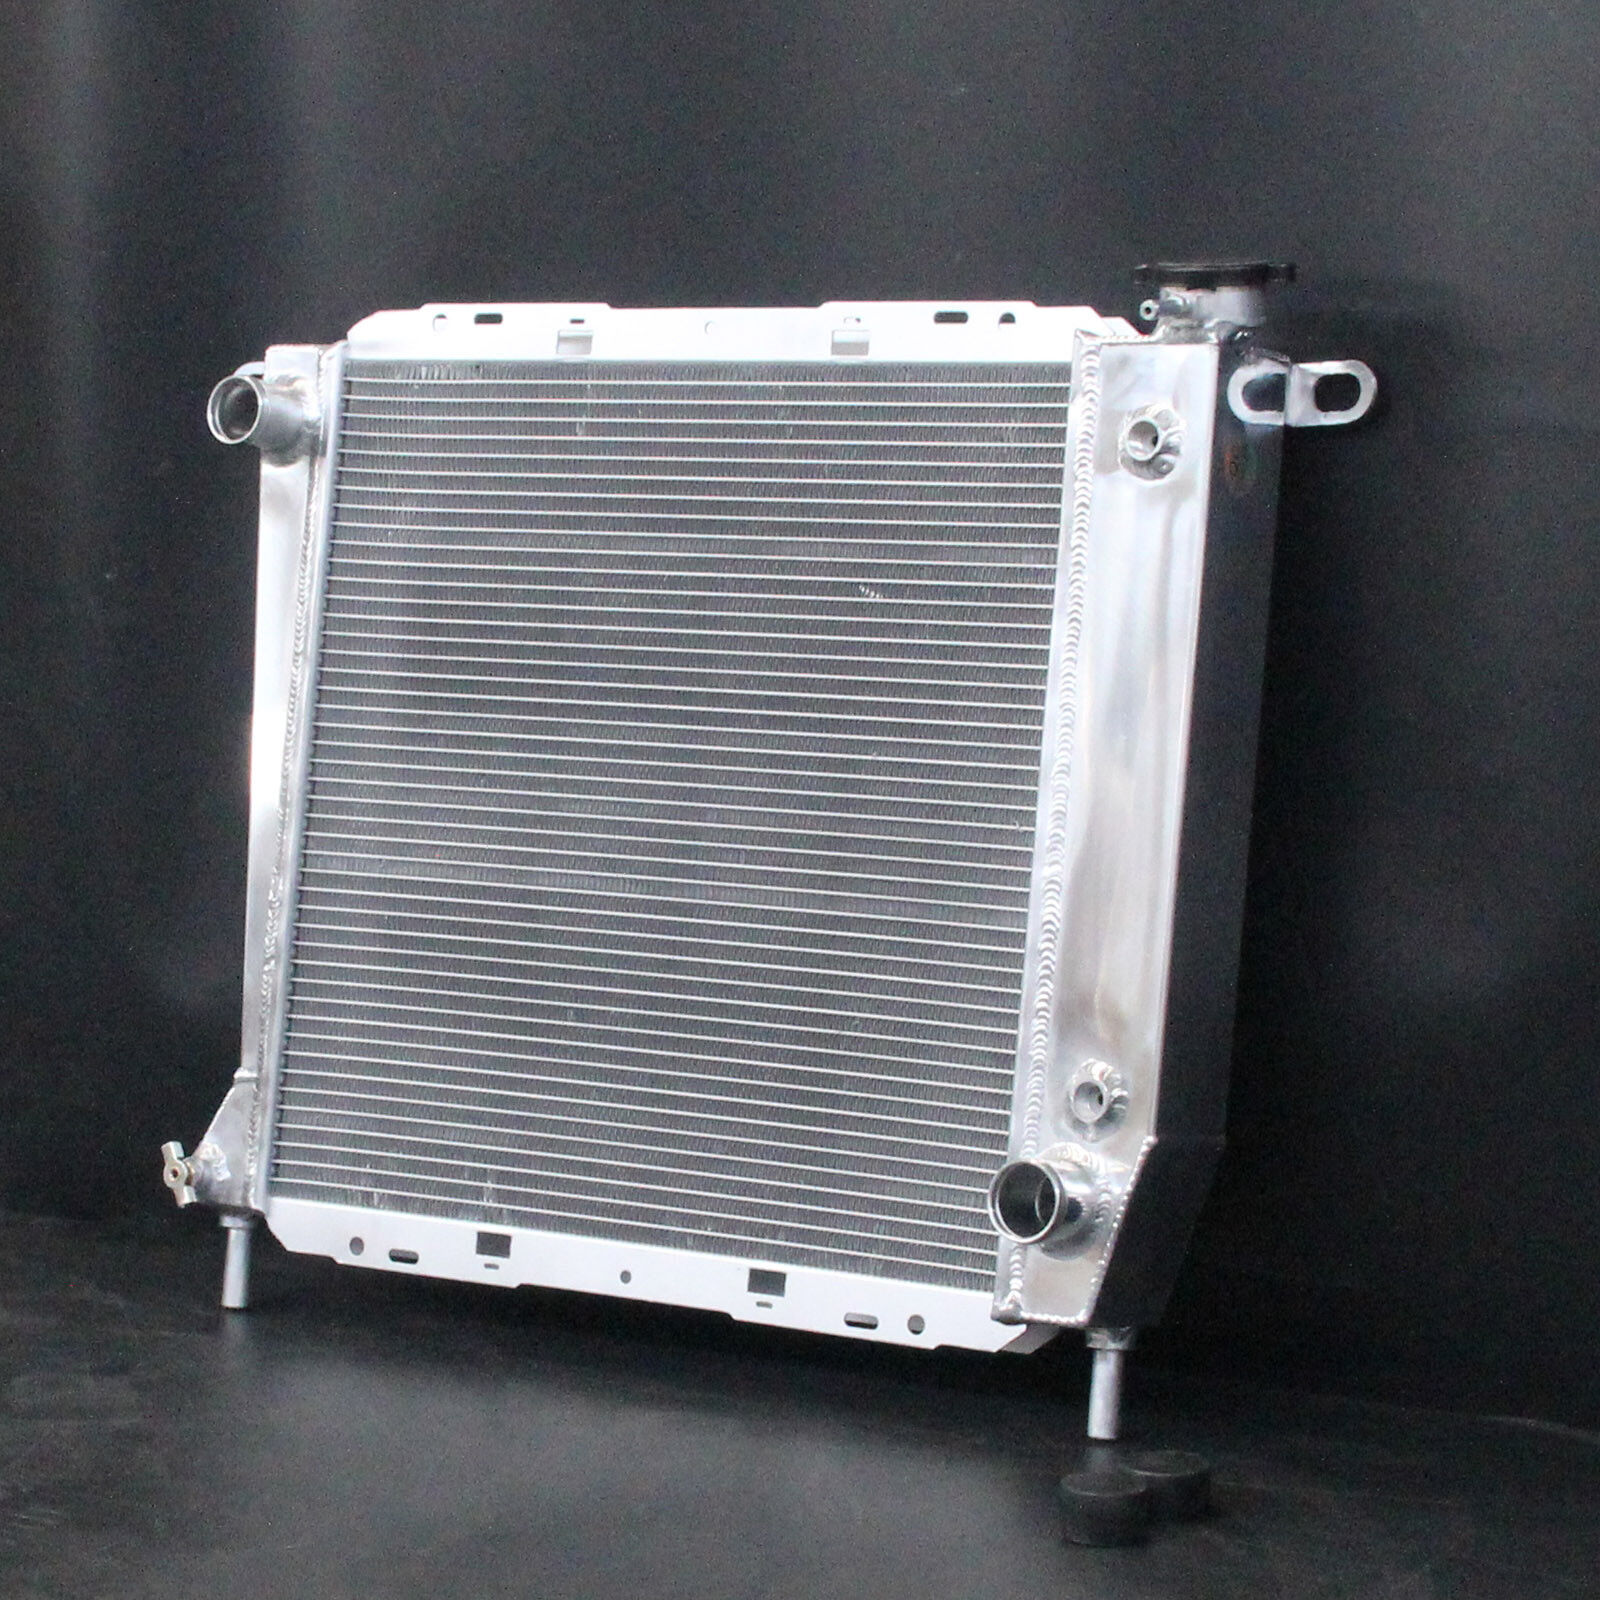 2 Row Core Aluminum Radiator For Ford Ranger 85 94 20l 23l Mazda 1998 B2500 Thermostat Location 3 Of 11